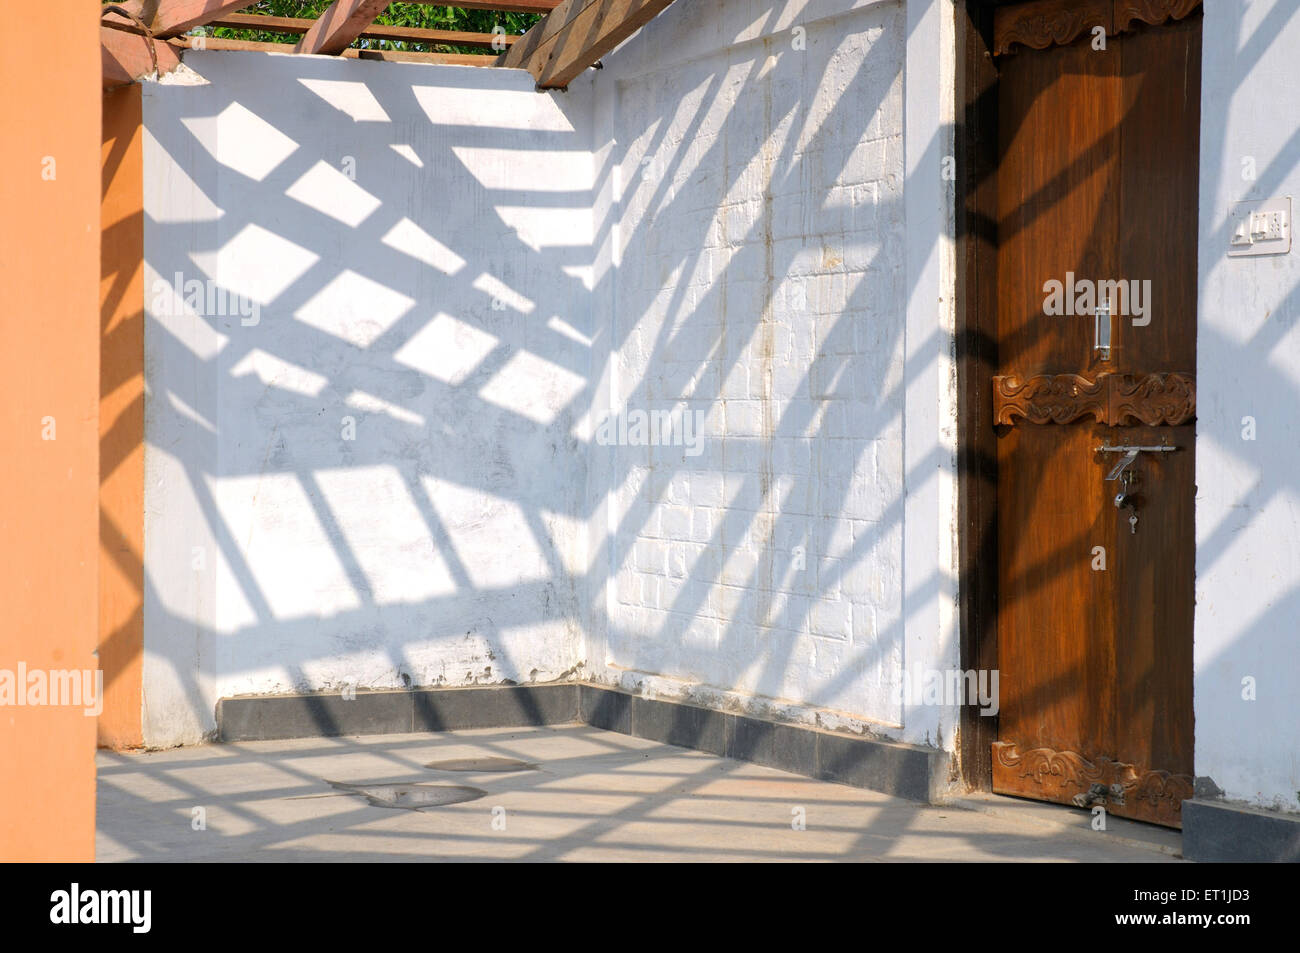 Shadows of wooden planks of roof ; Madhai Piparia ; Madhya Pradesh ; India 4 October 2008 - Stock Image